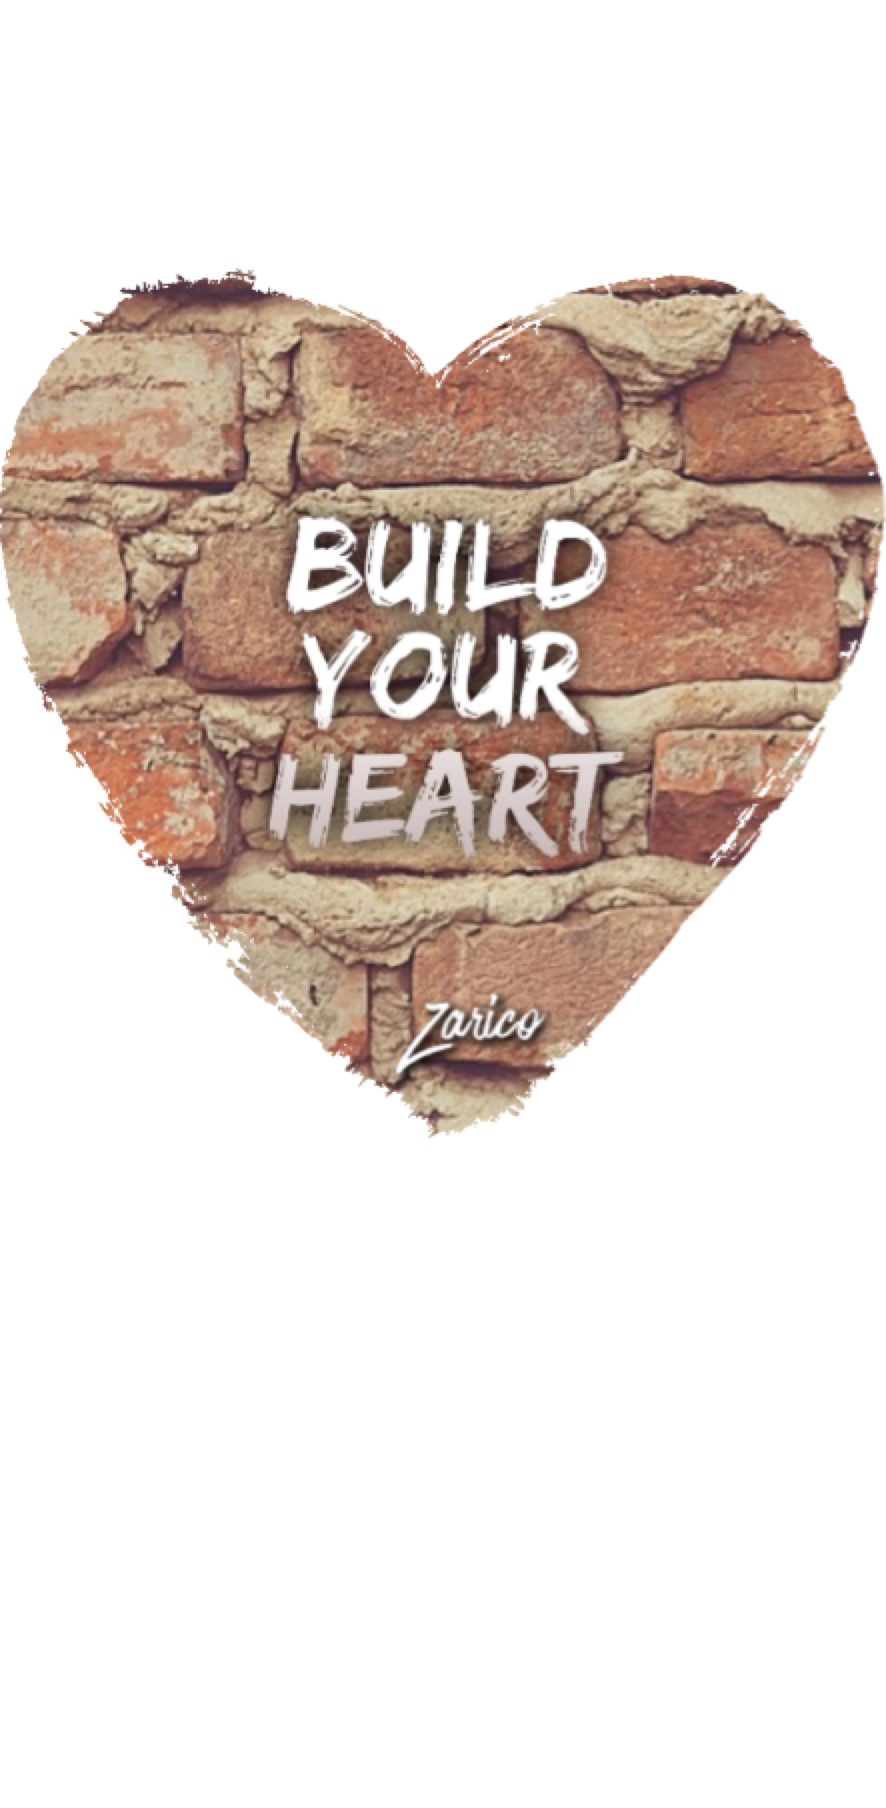 cover BUILD YOUR HEART